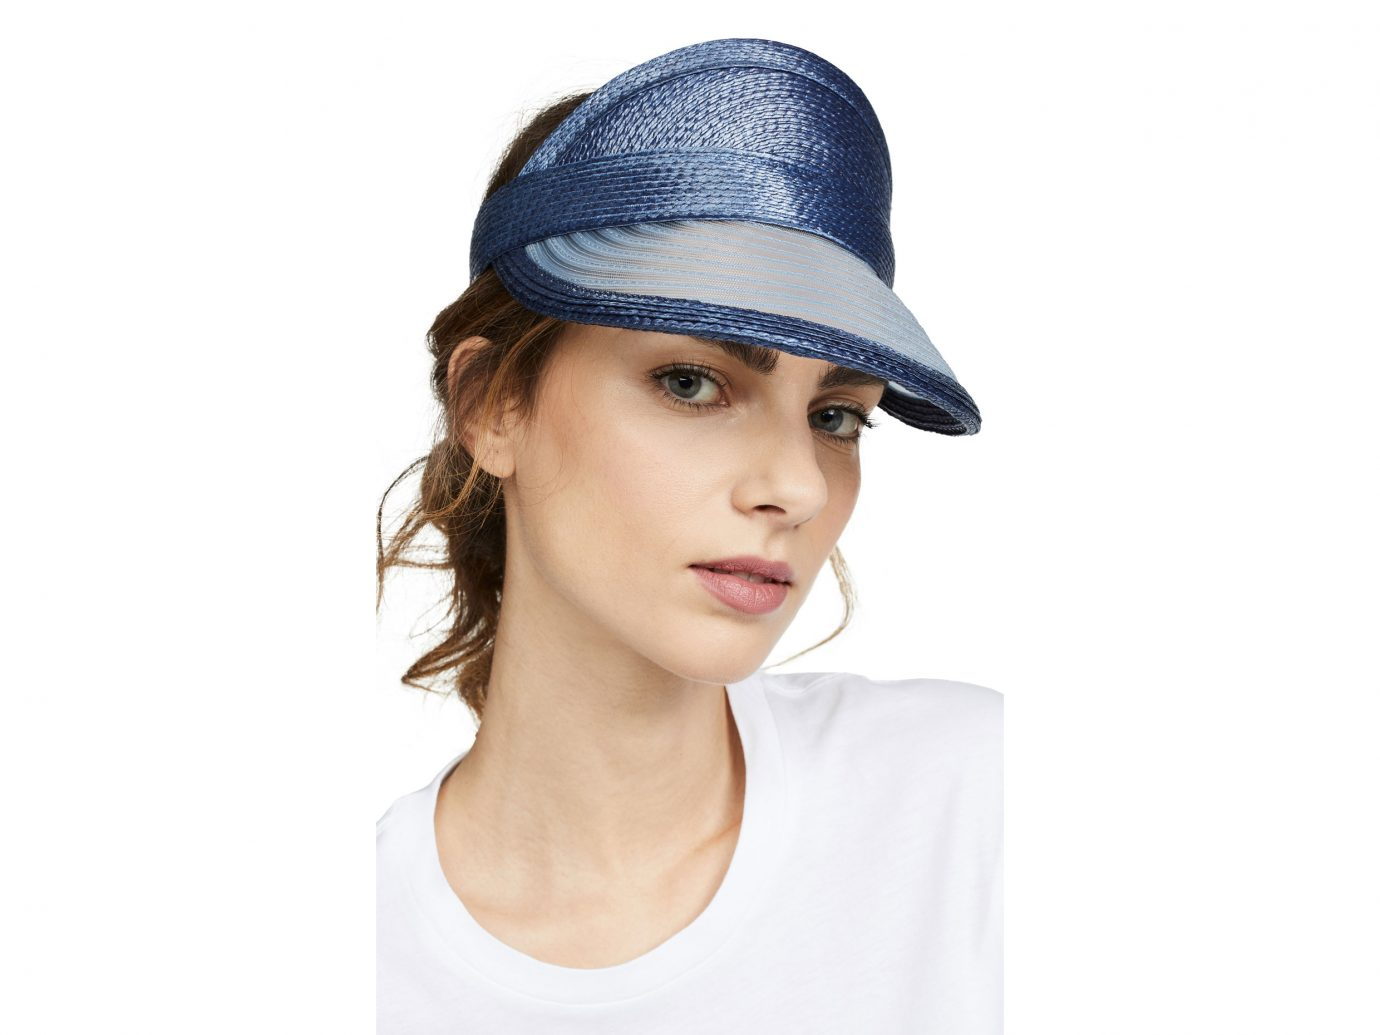 dc895d9aa The 15 Best Sun Hats to Buy for Summer 2019 | Jetsetter